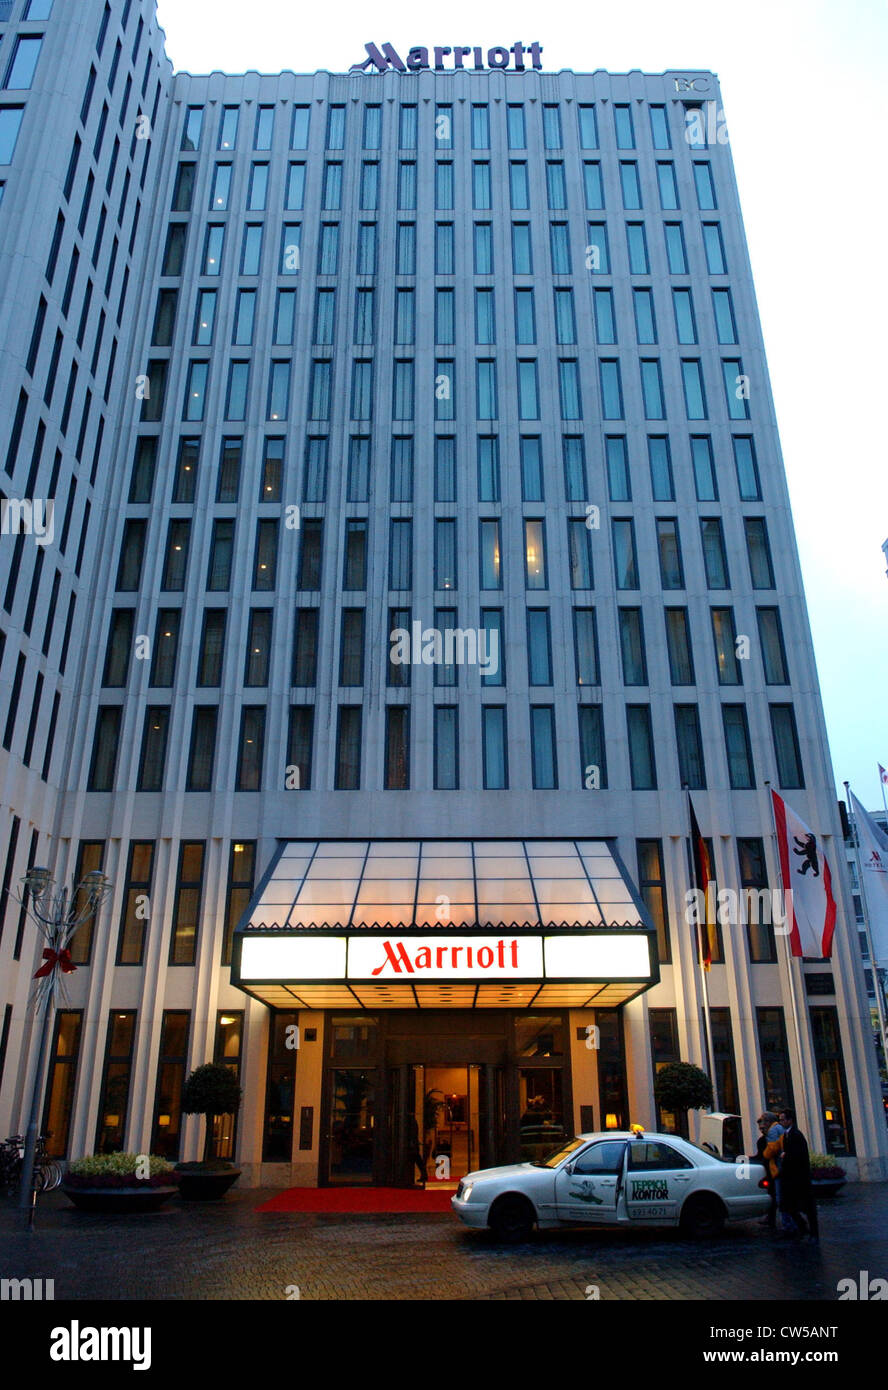 Marriott Hotel Berlin Germany